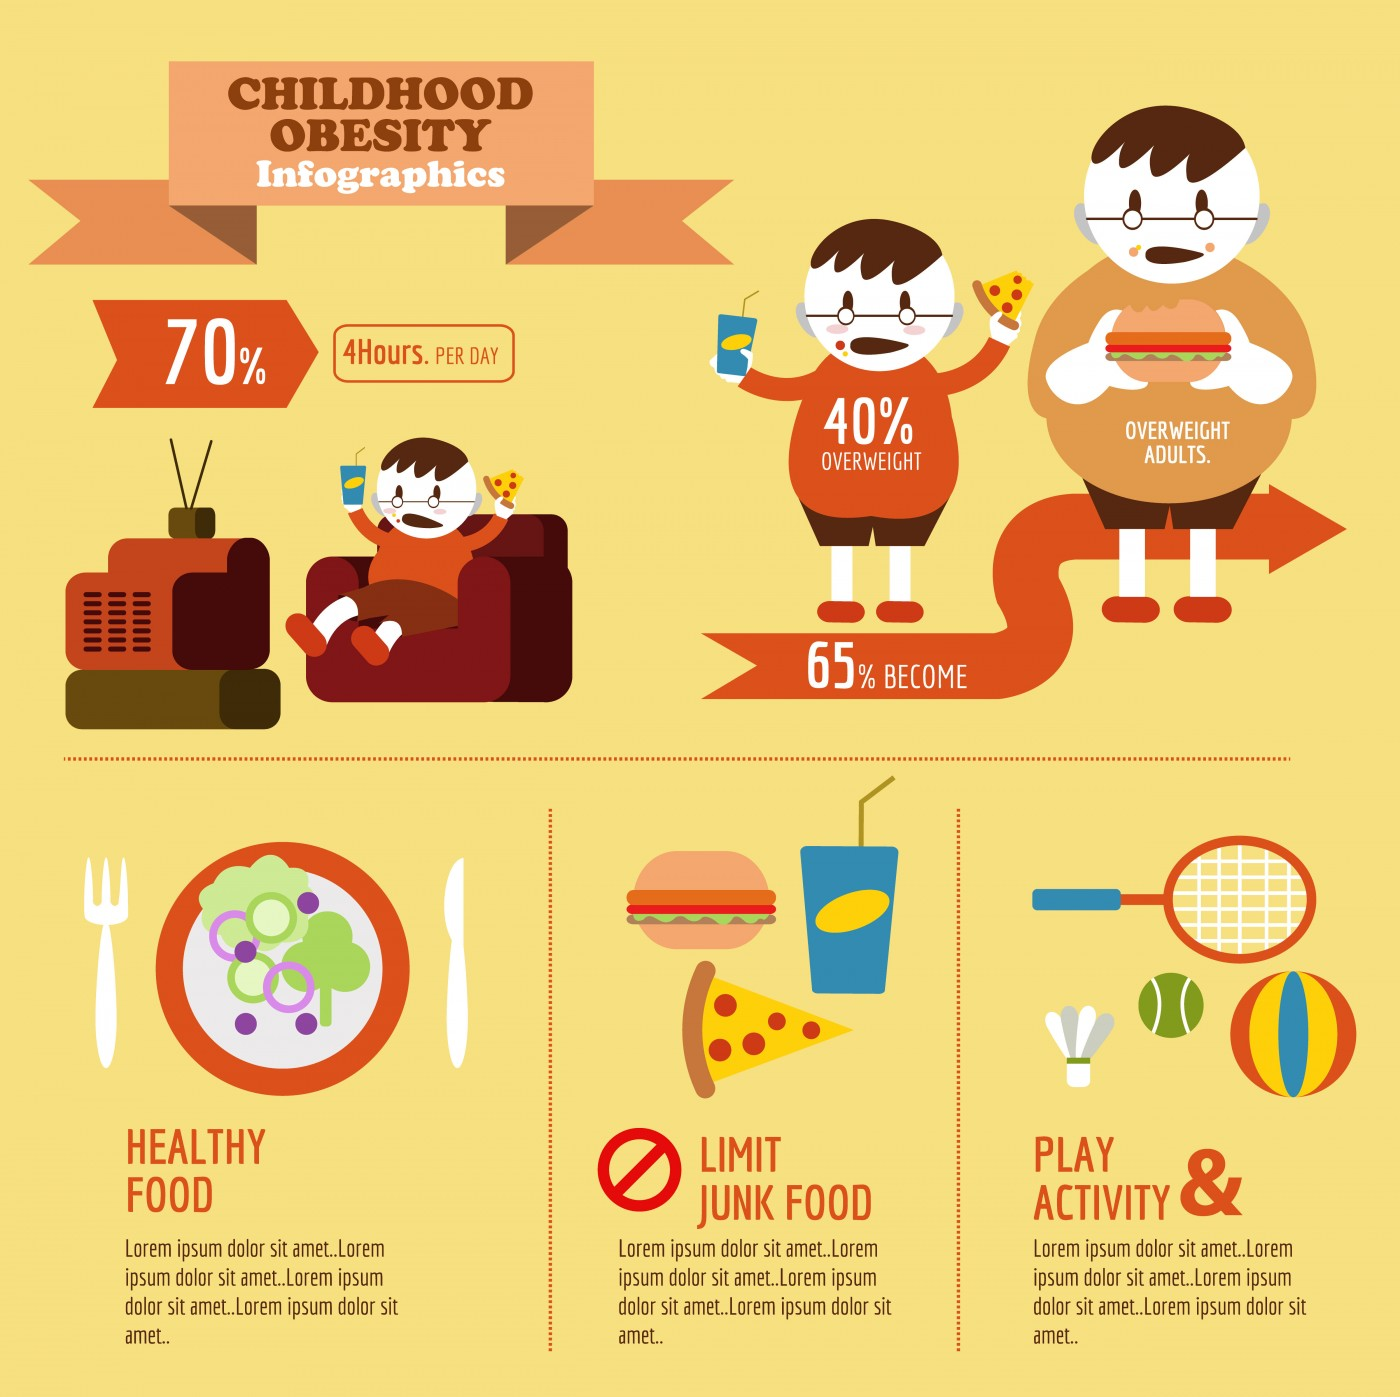 New Study Focuses On Children S Obesity Hallmarks And Proposes New Anti Obesity Strategies